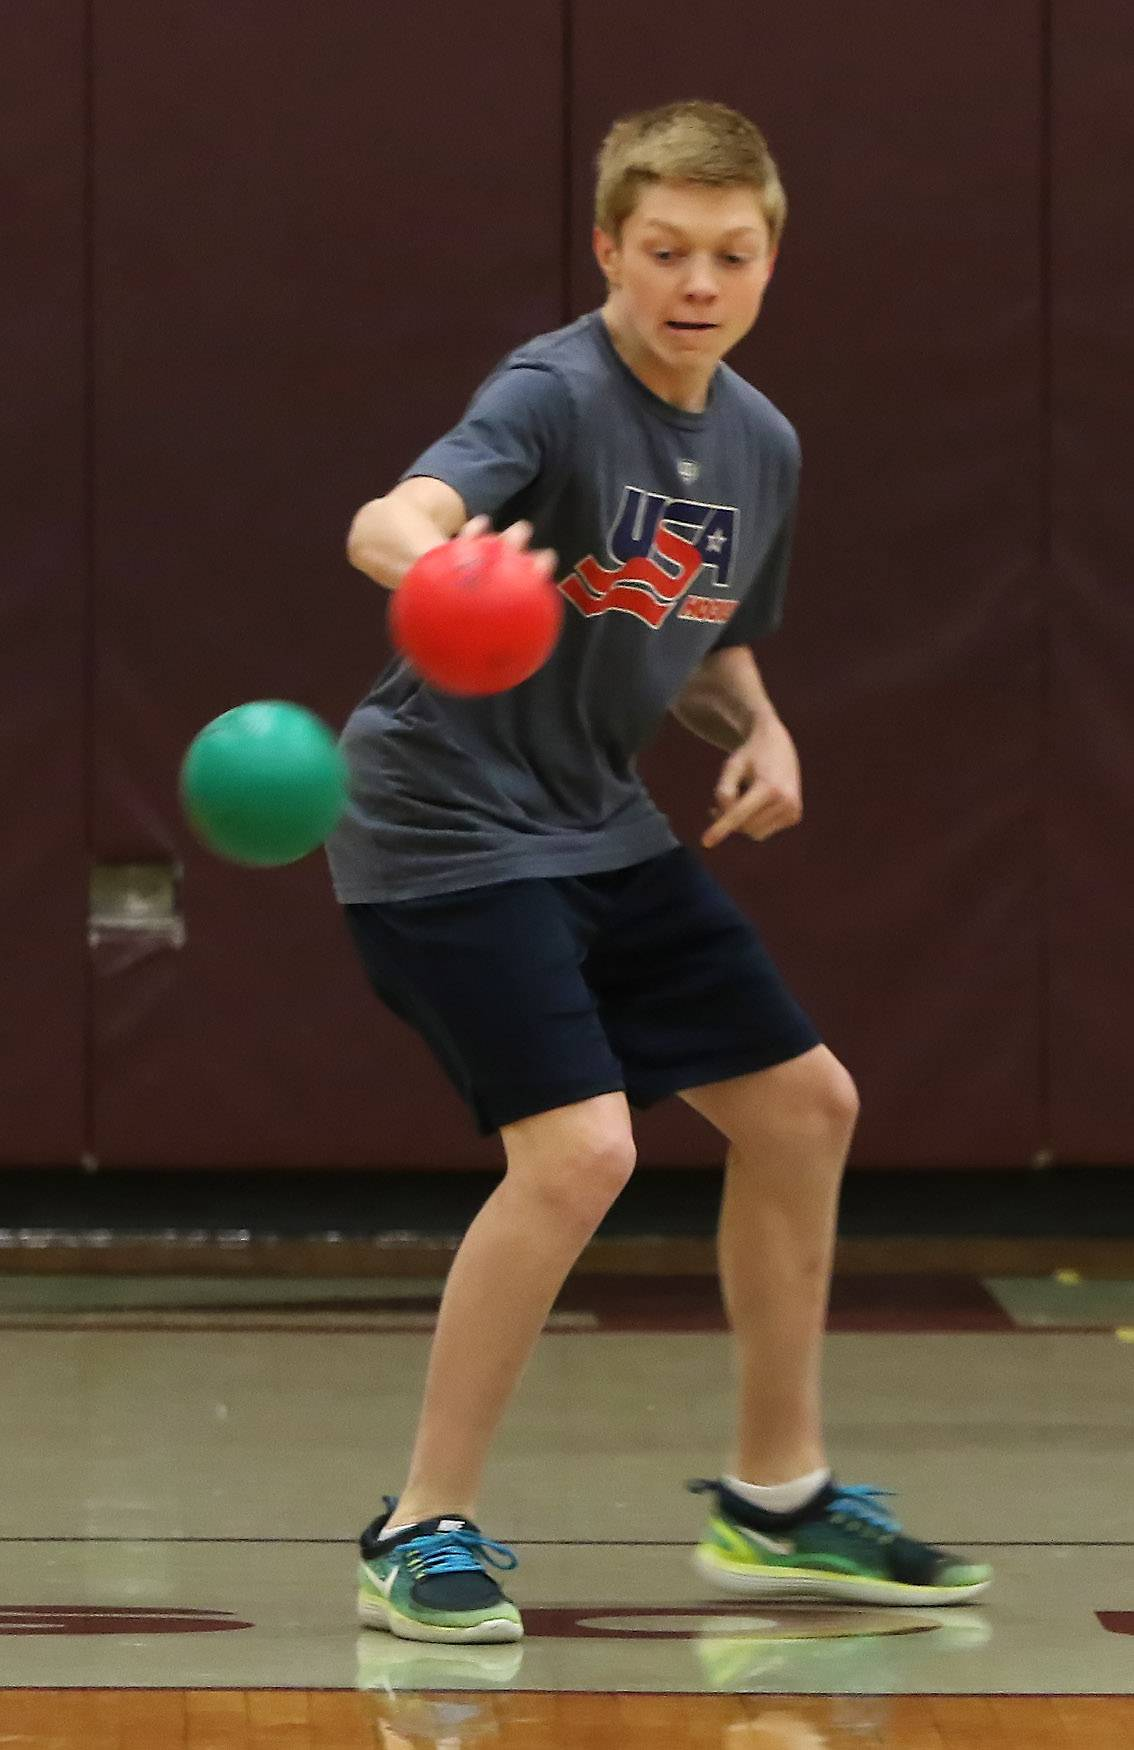 Eighth grader Nick Palmer of Average Joe's dodges a throw by Team Callero during a dodgeball tournament Thursday at Lake Zurich Middle School South. The event was hosted by the student council to benefit NephCure, a nonprofit organization that provides support for people who suffer from kidney disease.